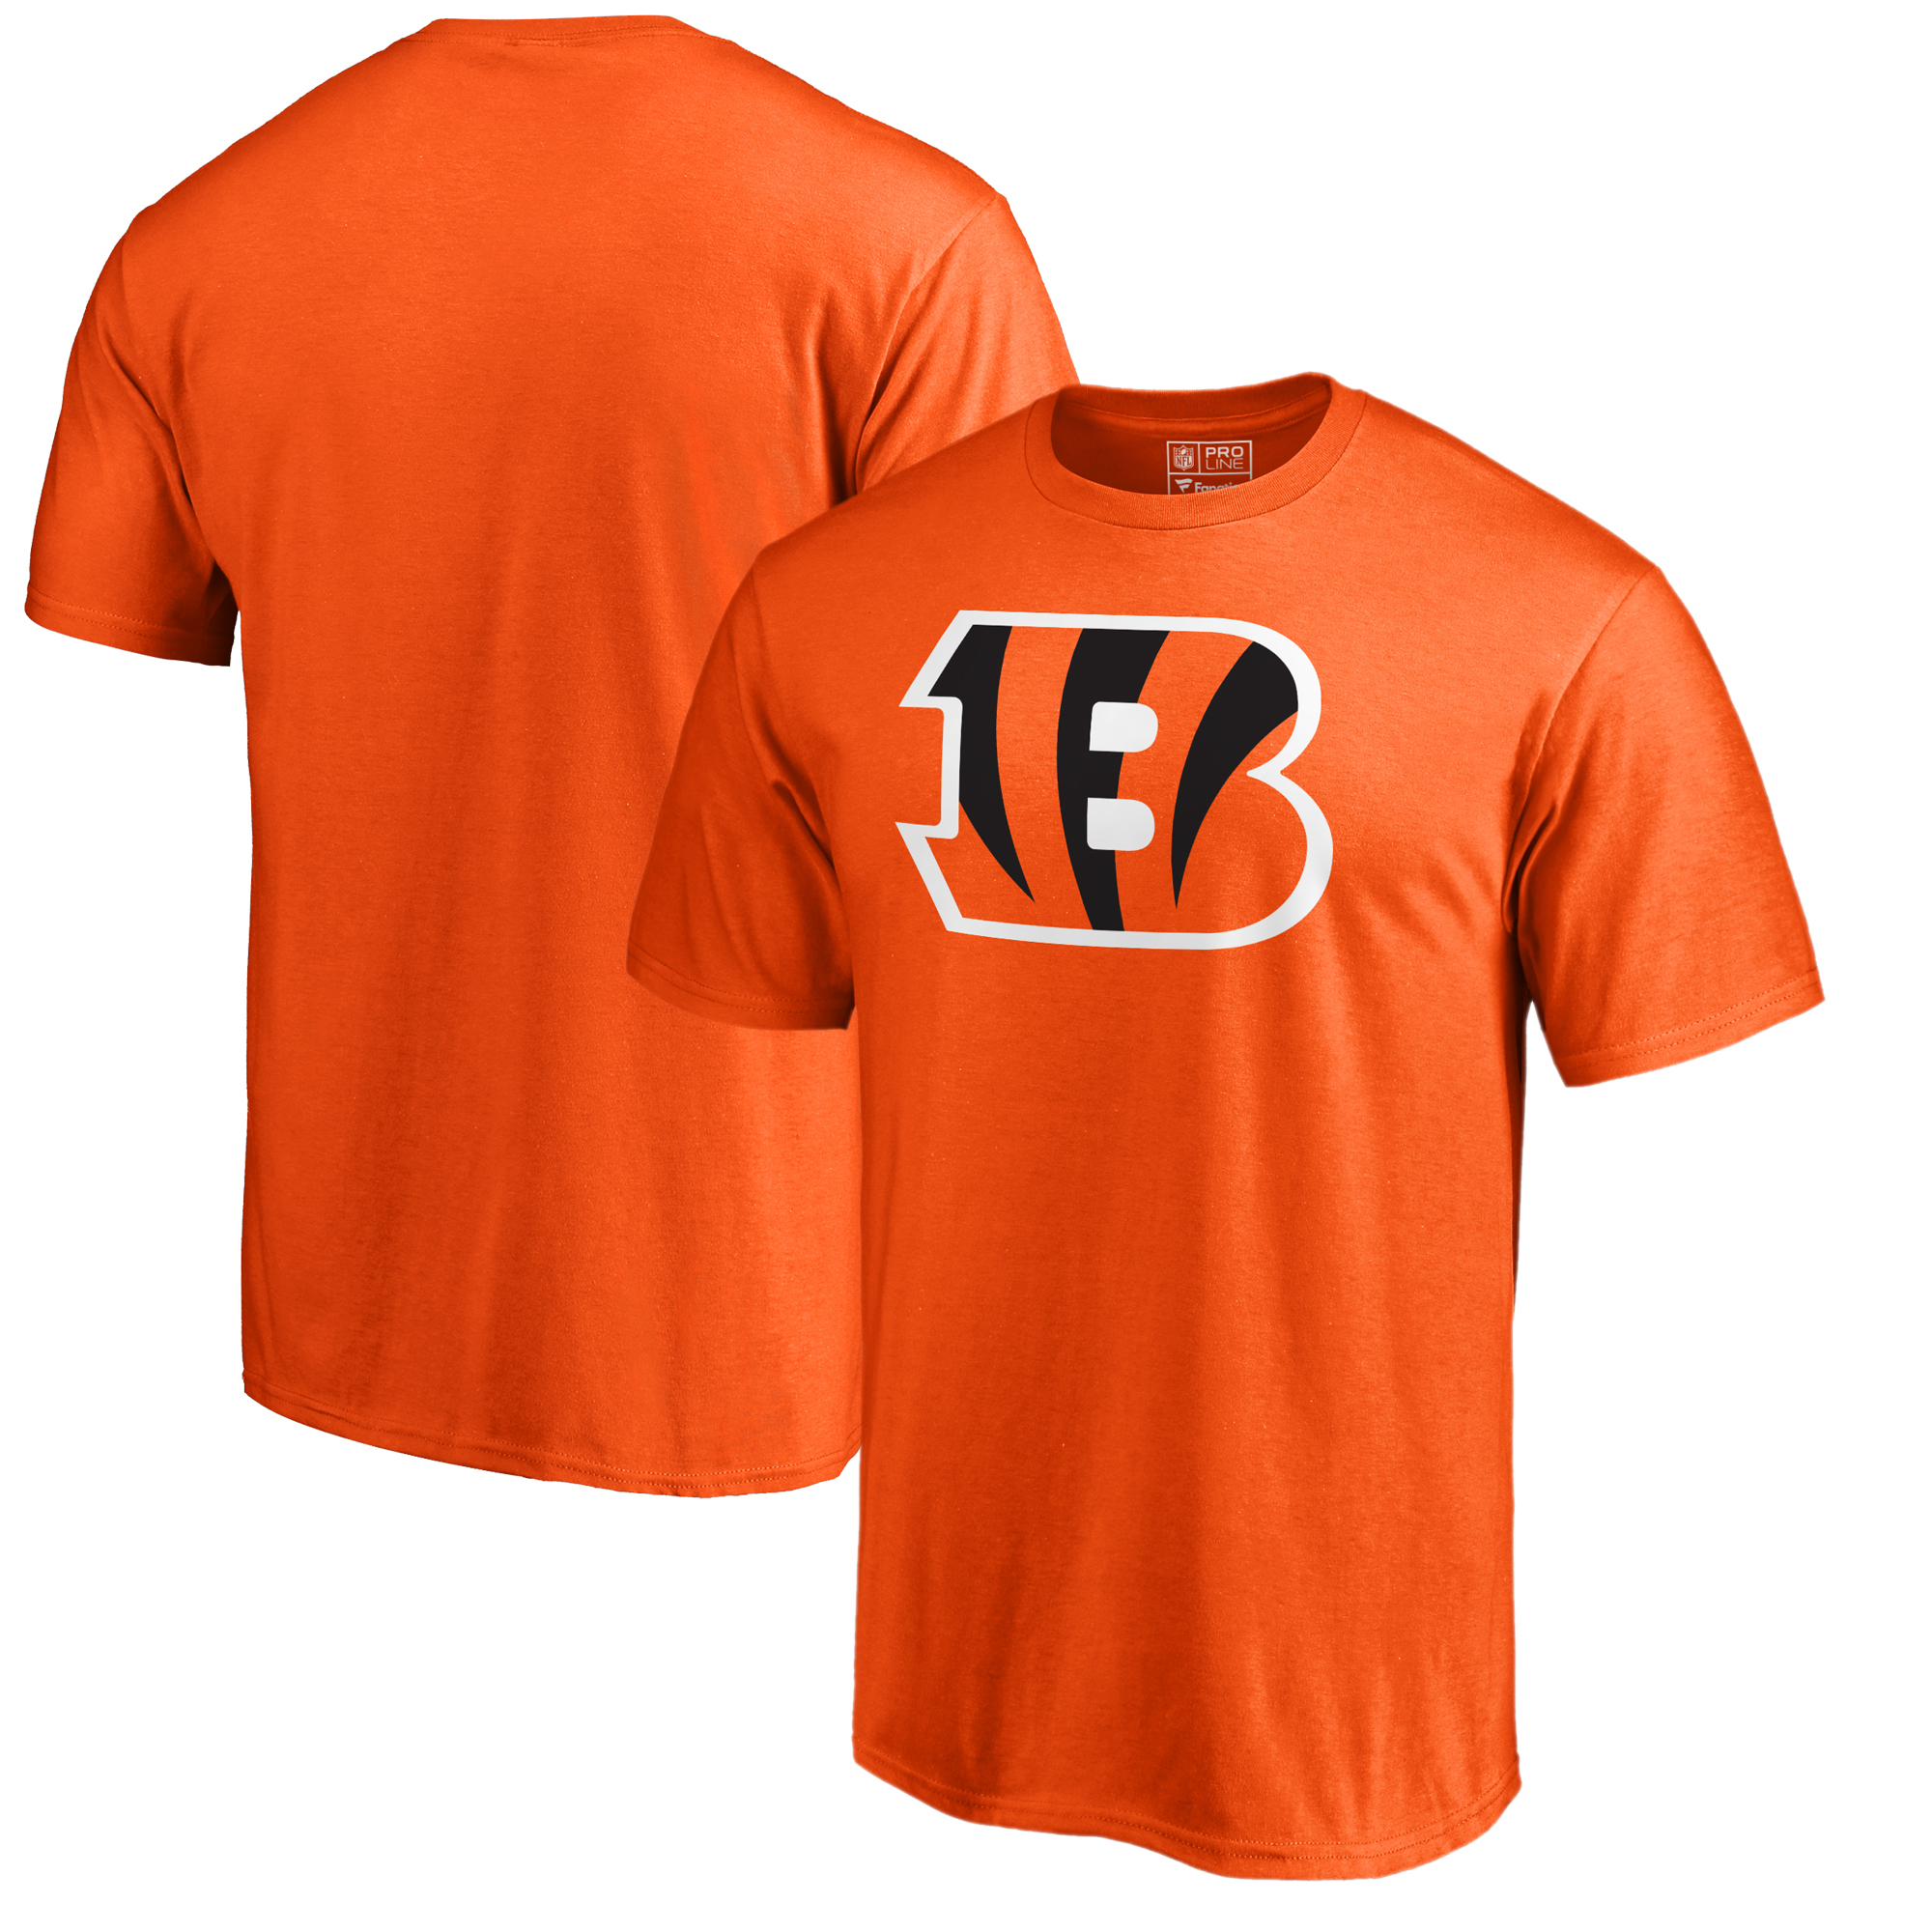 Cincinnati Bengals NFL Pro Line by Fanatics Branded Primary Logo T-Shirt - Orange